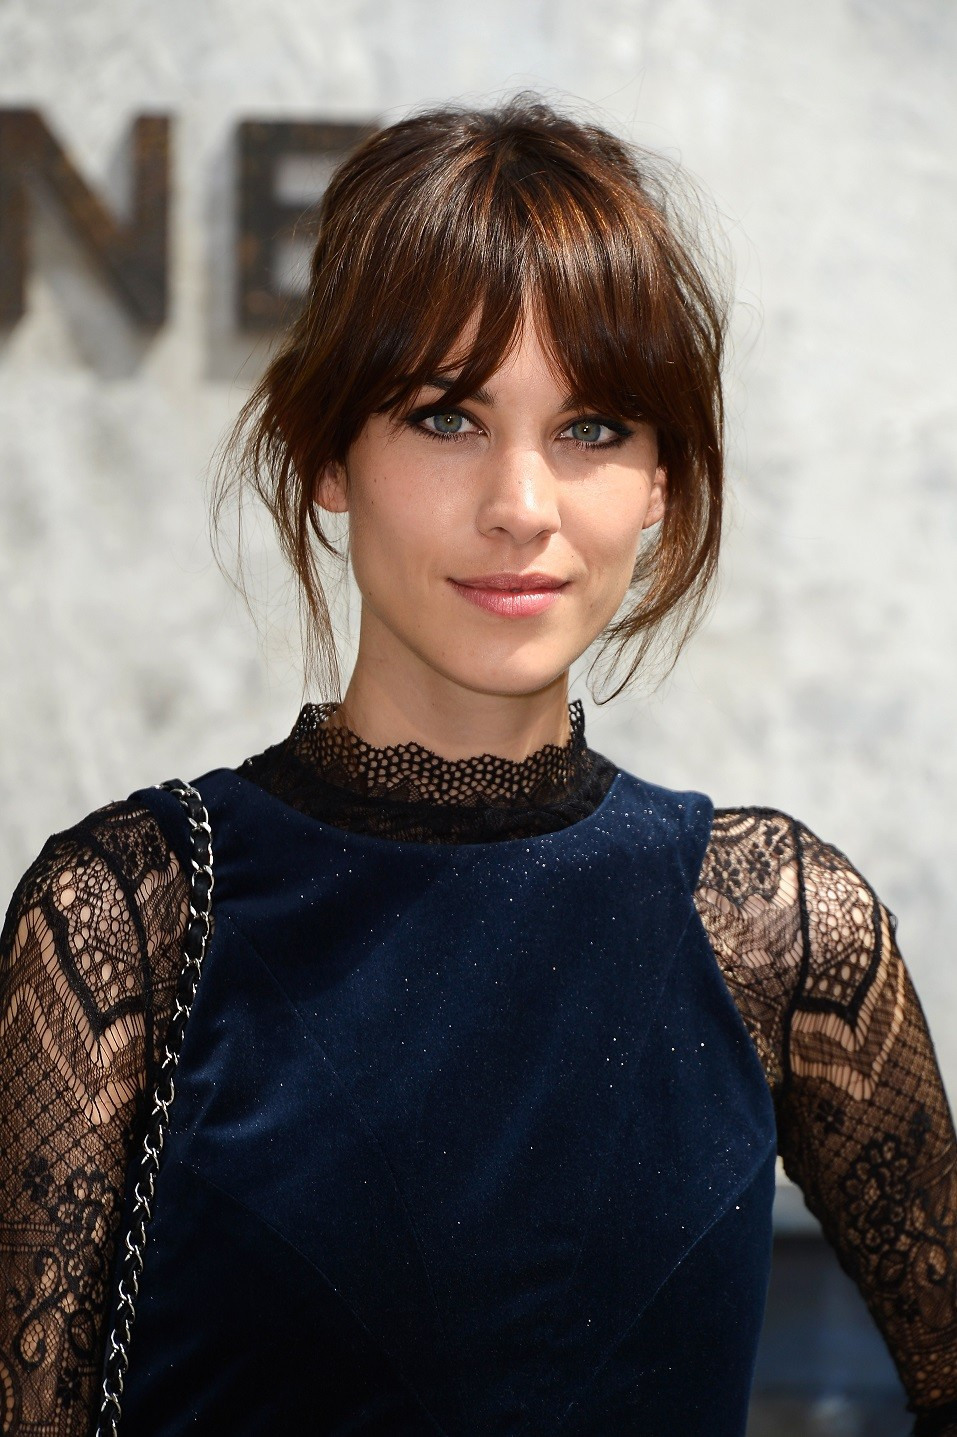 Alexa Chung attends the Chanel show